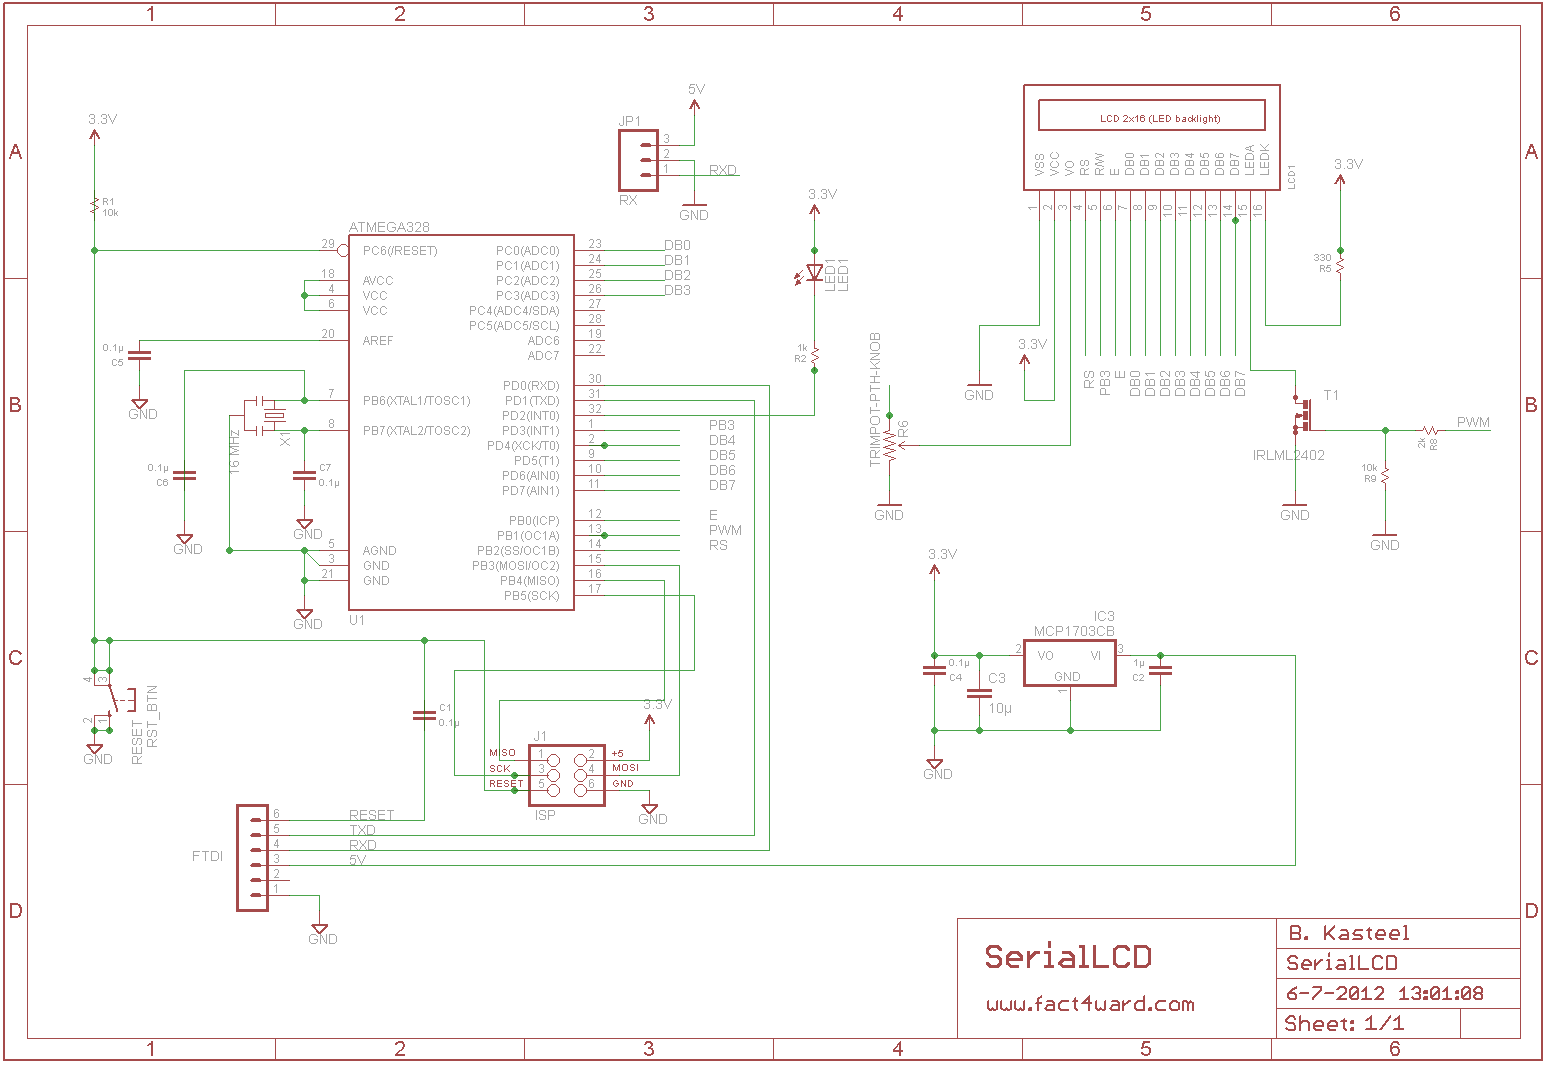 Serial Lcd For The Arduino With 3 Pin Connection Charlieplexing Led Amp Code Seriallcdschematic Seriallcdbrd